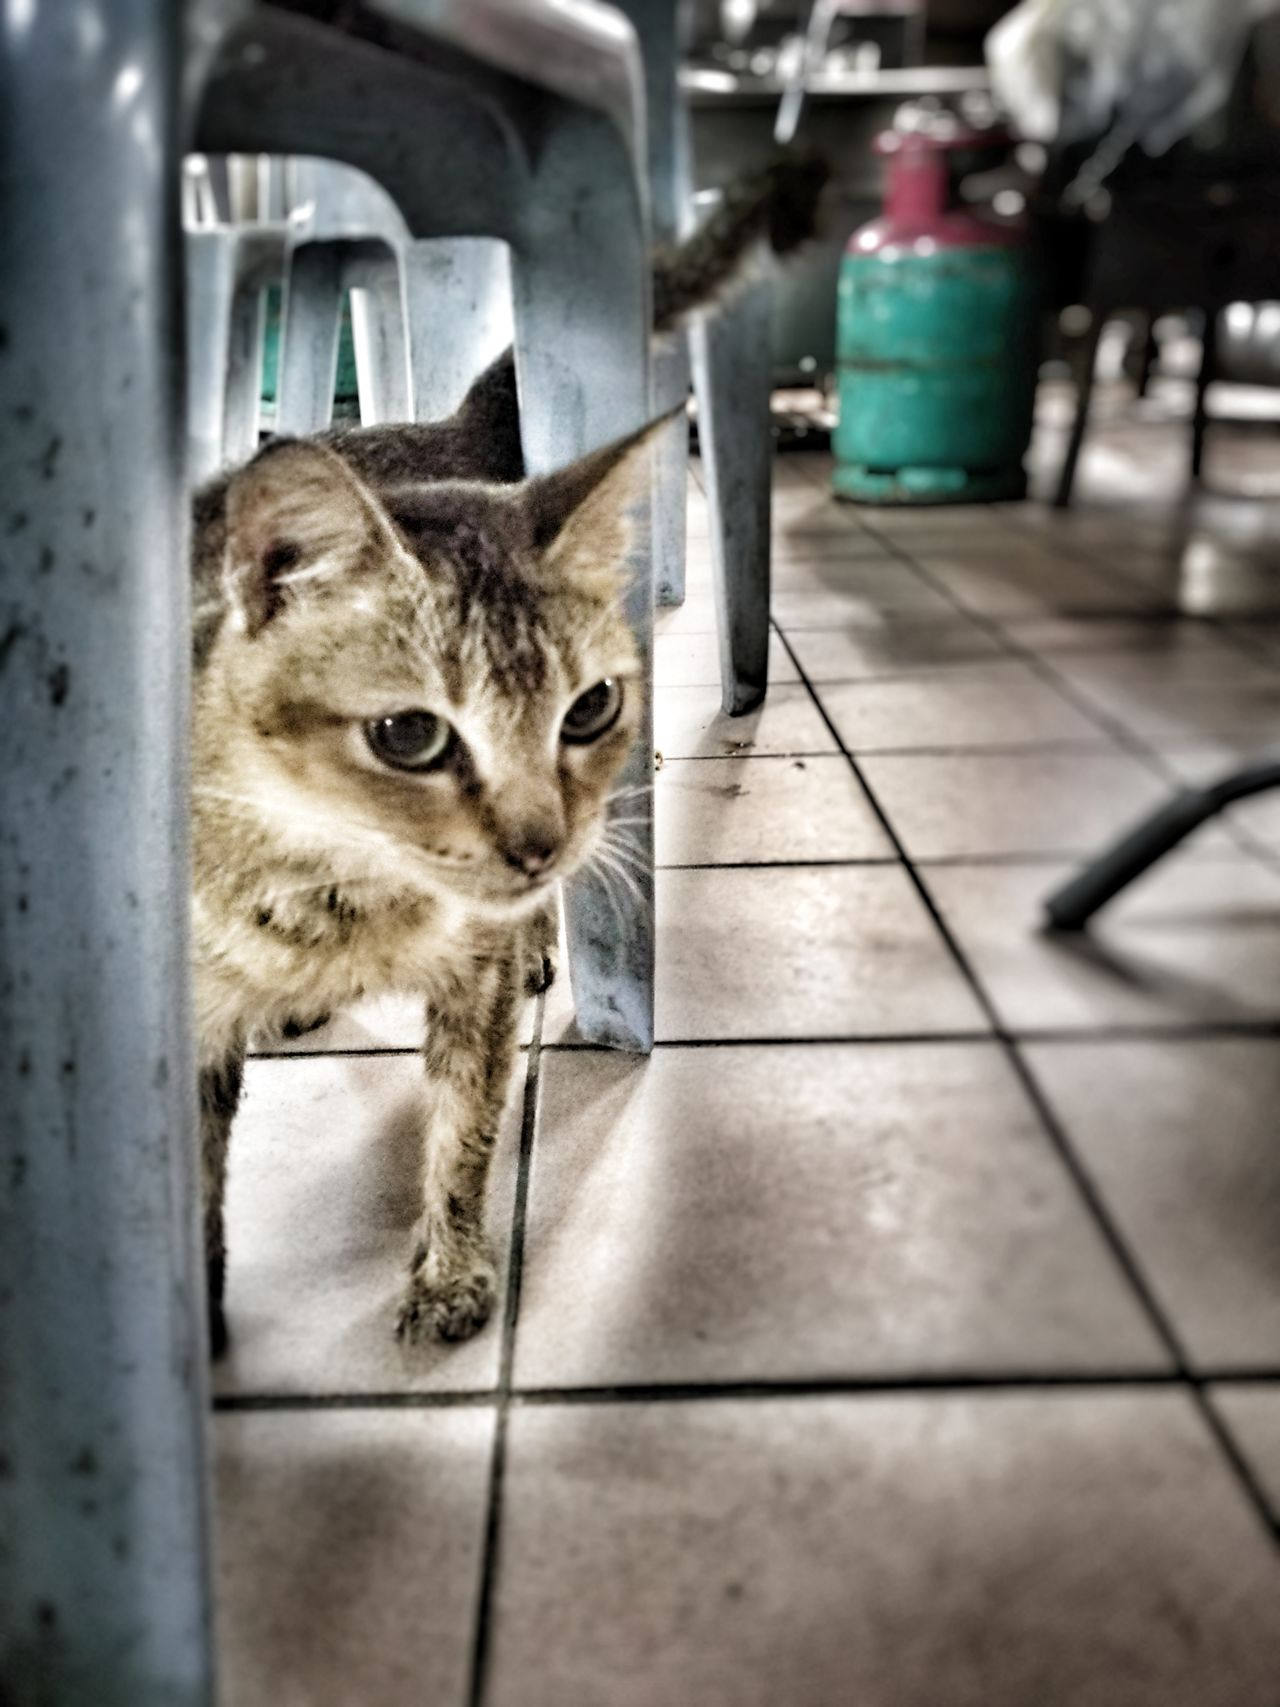 Cat looking for food in food court. Animal Themes Pets Domestic Cat One Animal Domestic Animals Cat Homeless Cat Animal Homeless Homeless Animal Homelessness  Kitten Homelessness  Homeless Cats Animalphotography Homelessness  Homeless Kitten HuaweiP9Photography Huawei P9 Plus Hua Wei P9 Plus Homelessness  Huaweiphotography Looking At Camera Homelessness  HuaweiP9